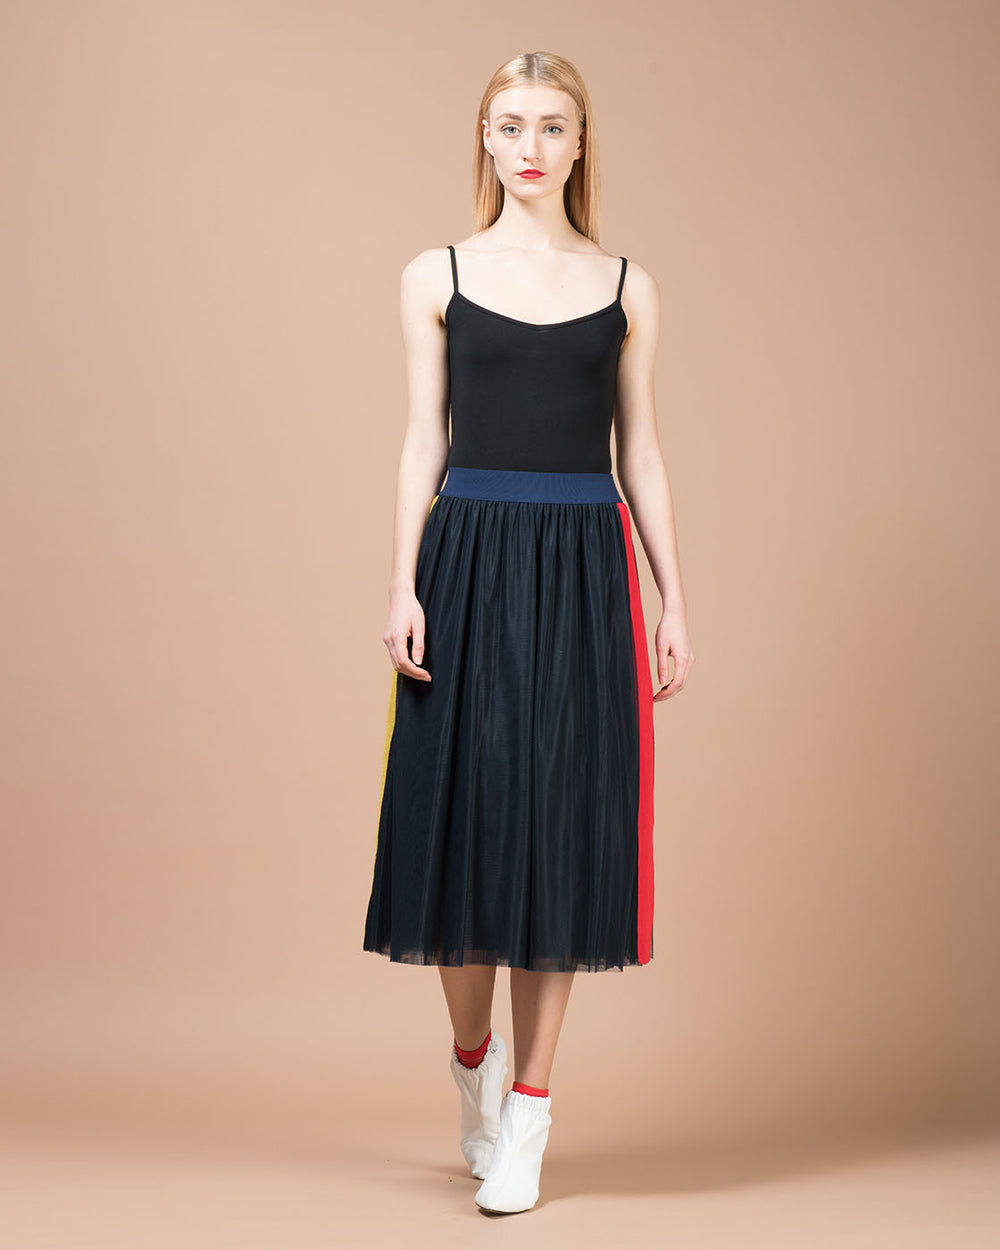 Black Tulle Midi Skirt